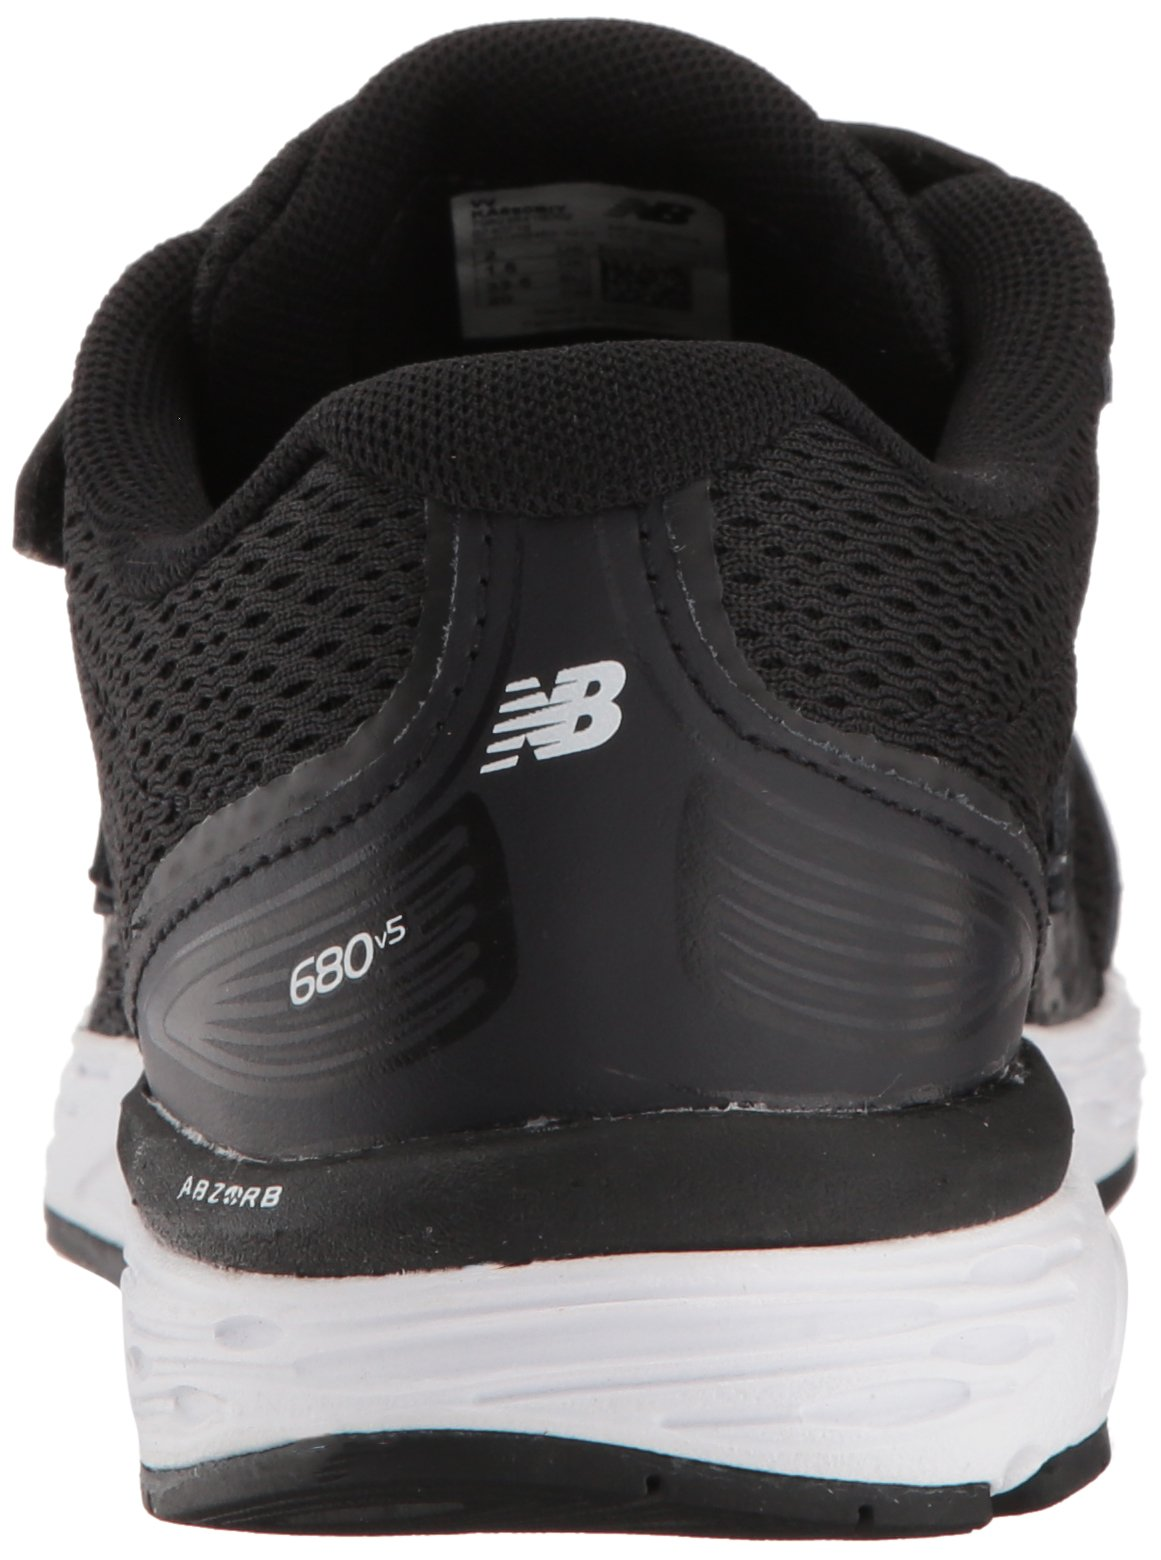 New Balance Boys' 680v5 Hook and Loop Running Shoe, Black/White, 9 M US Toddler by New Balance (Image #2)